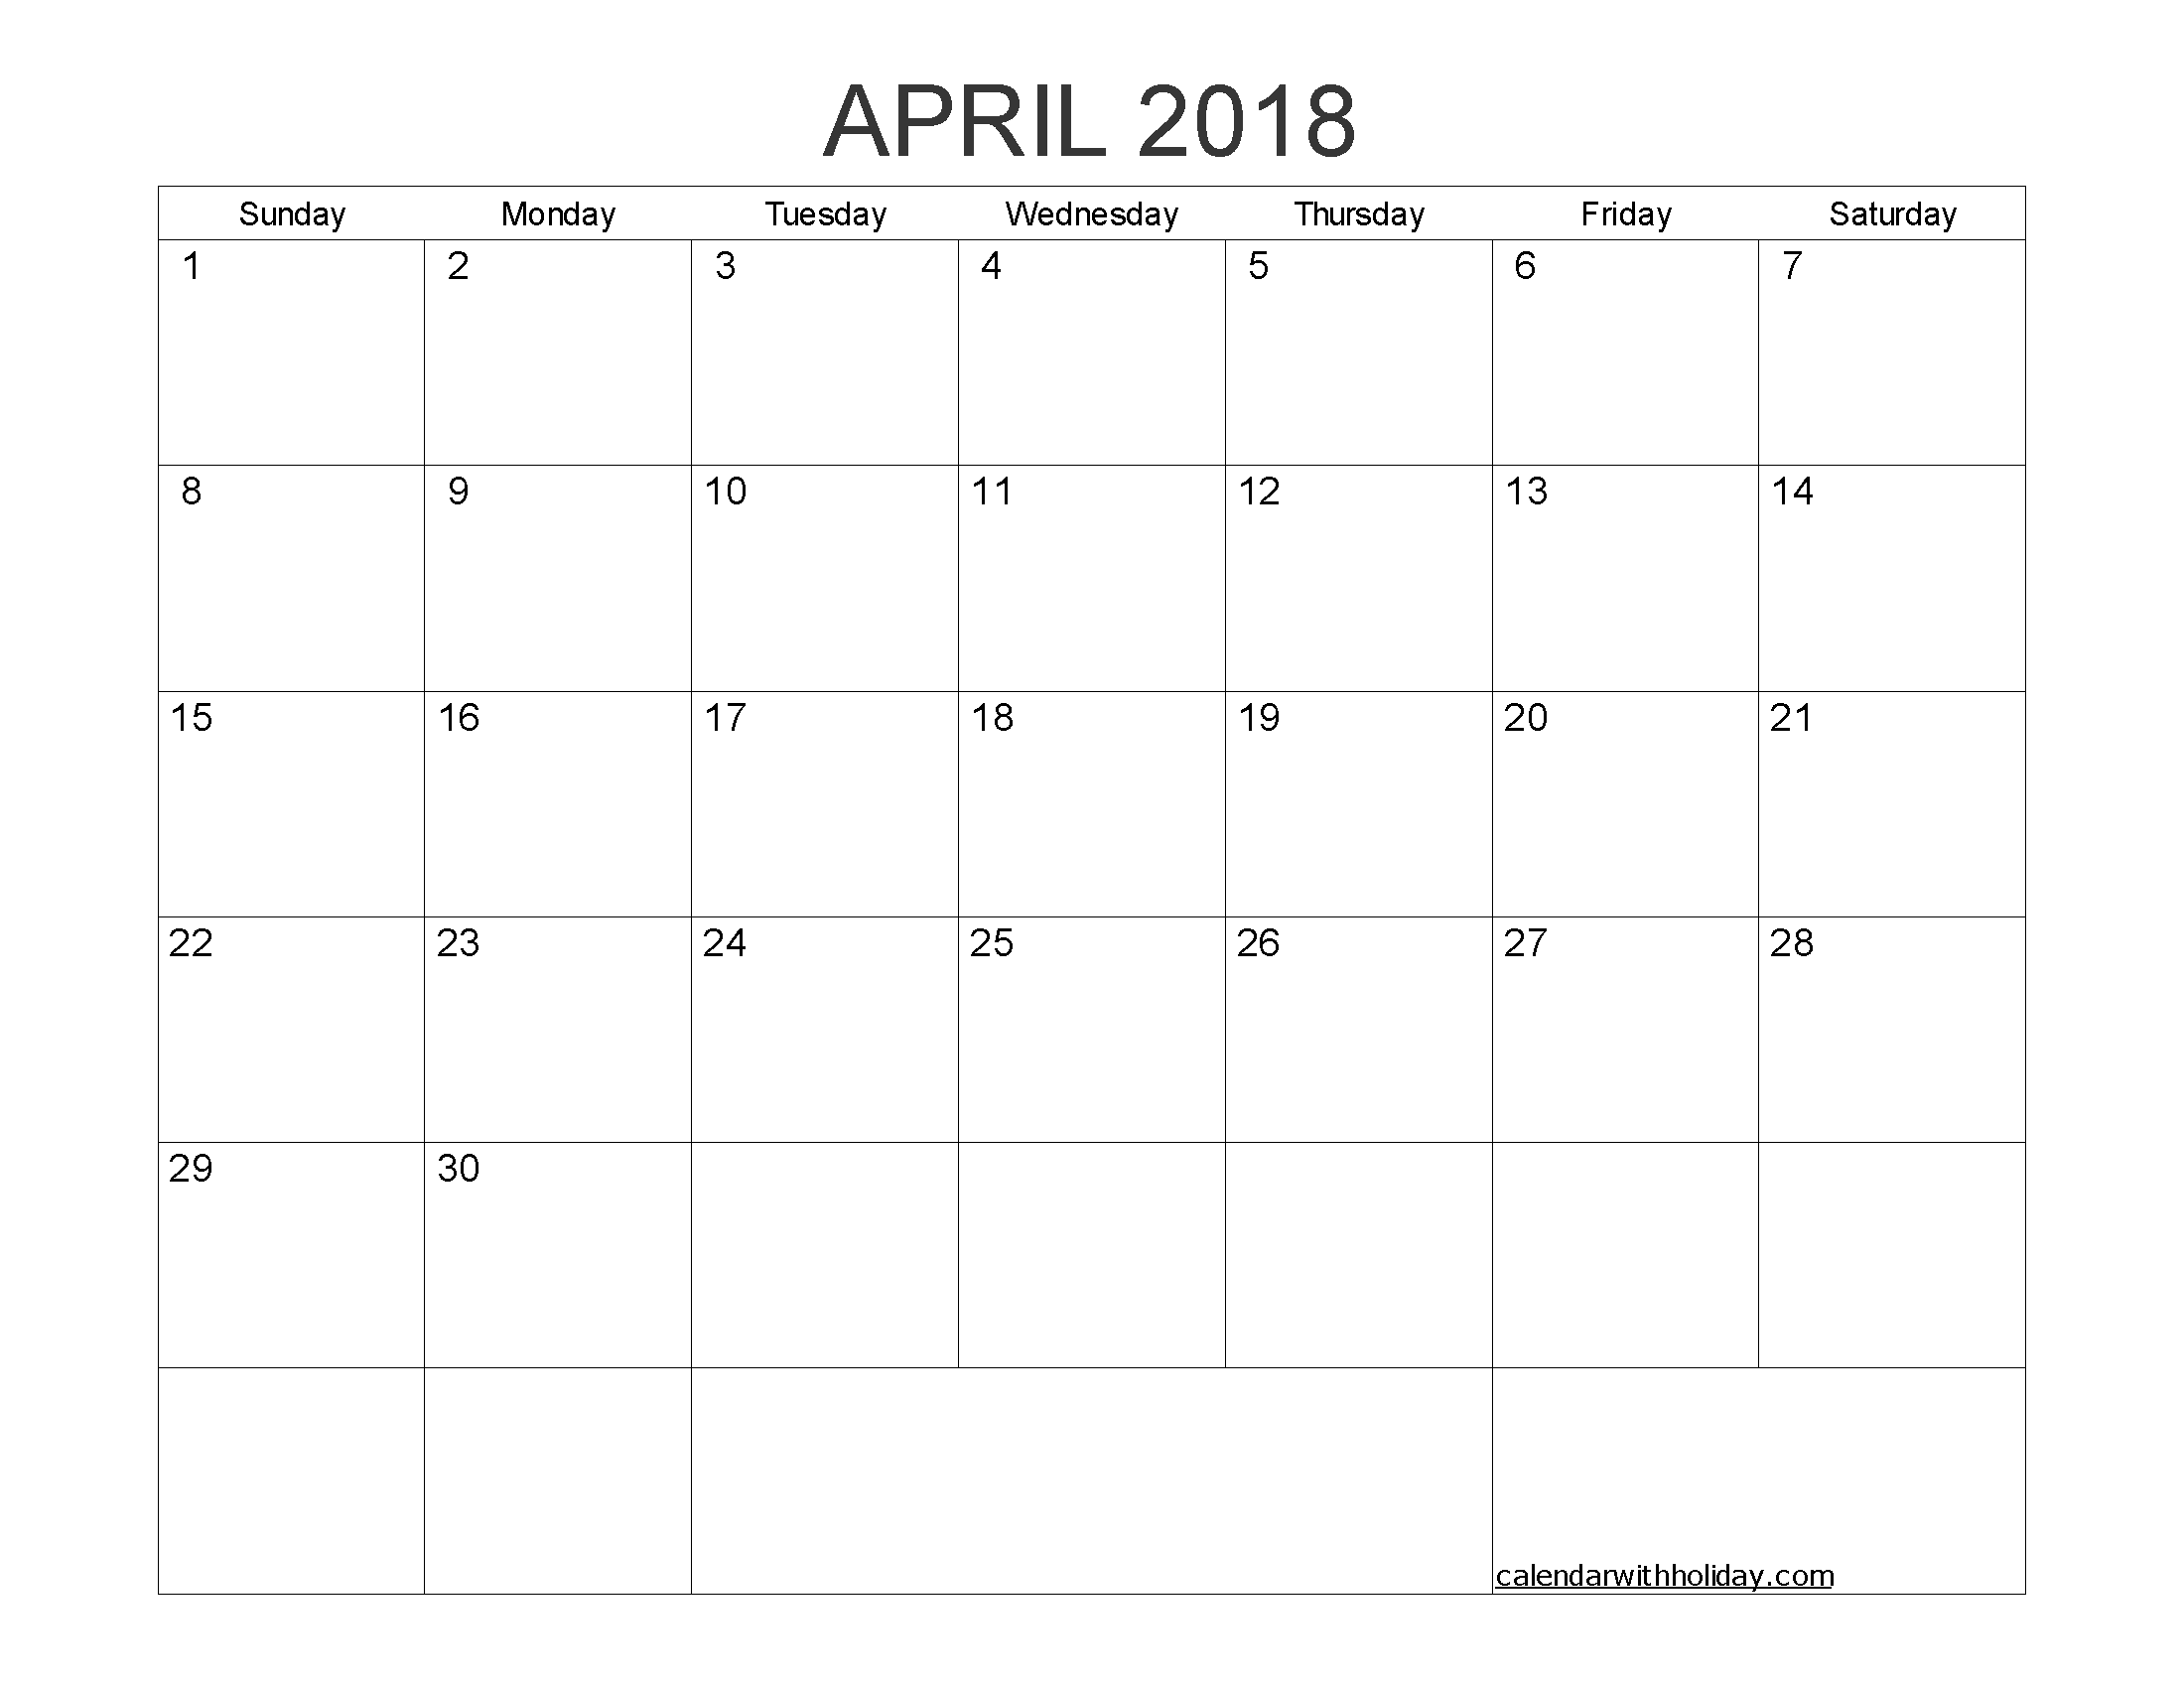 click the link to download your calendar template with high resolution image file